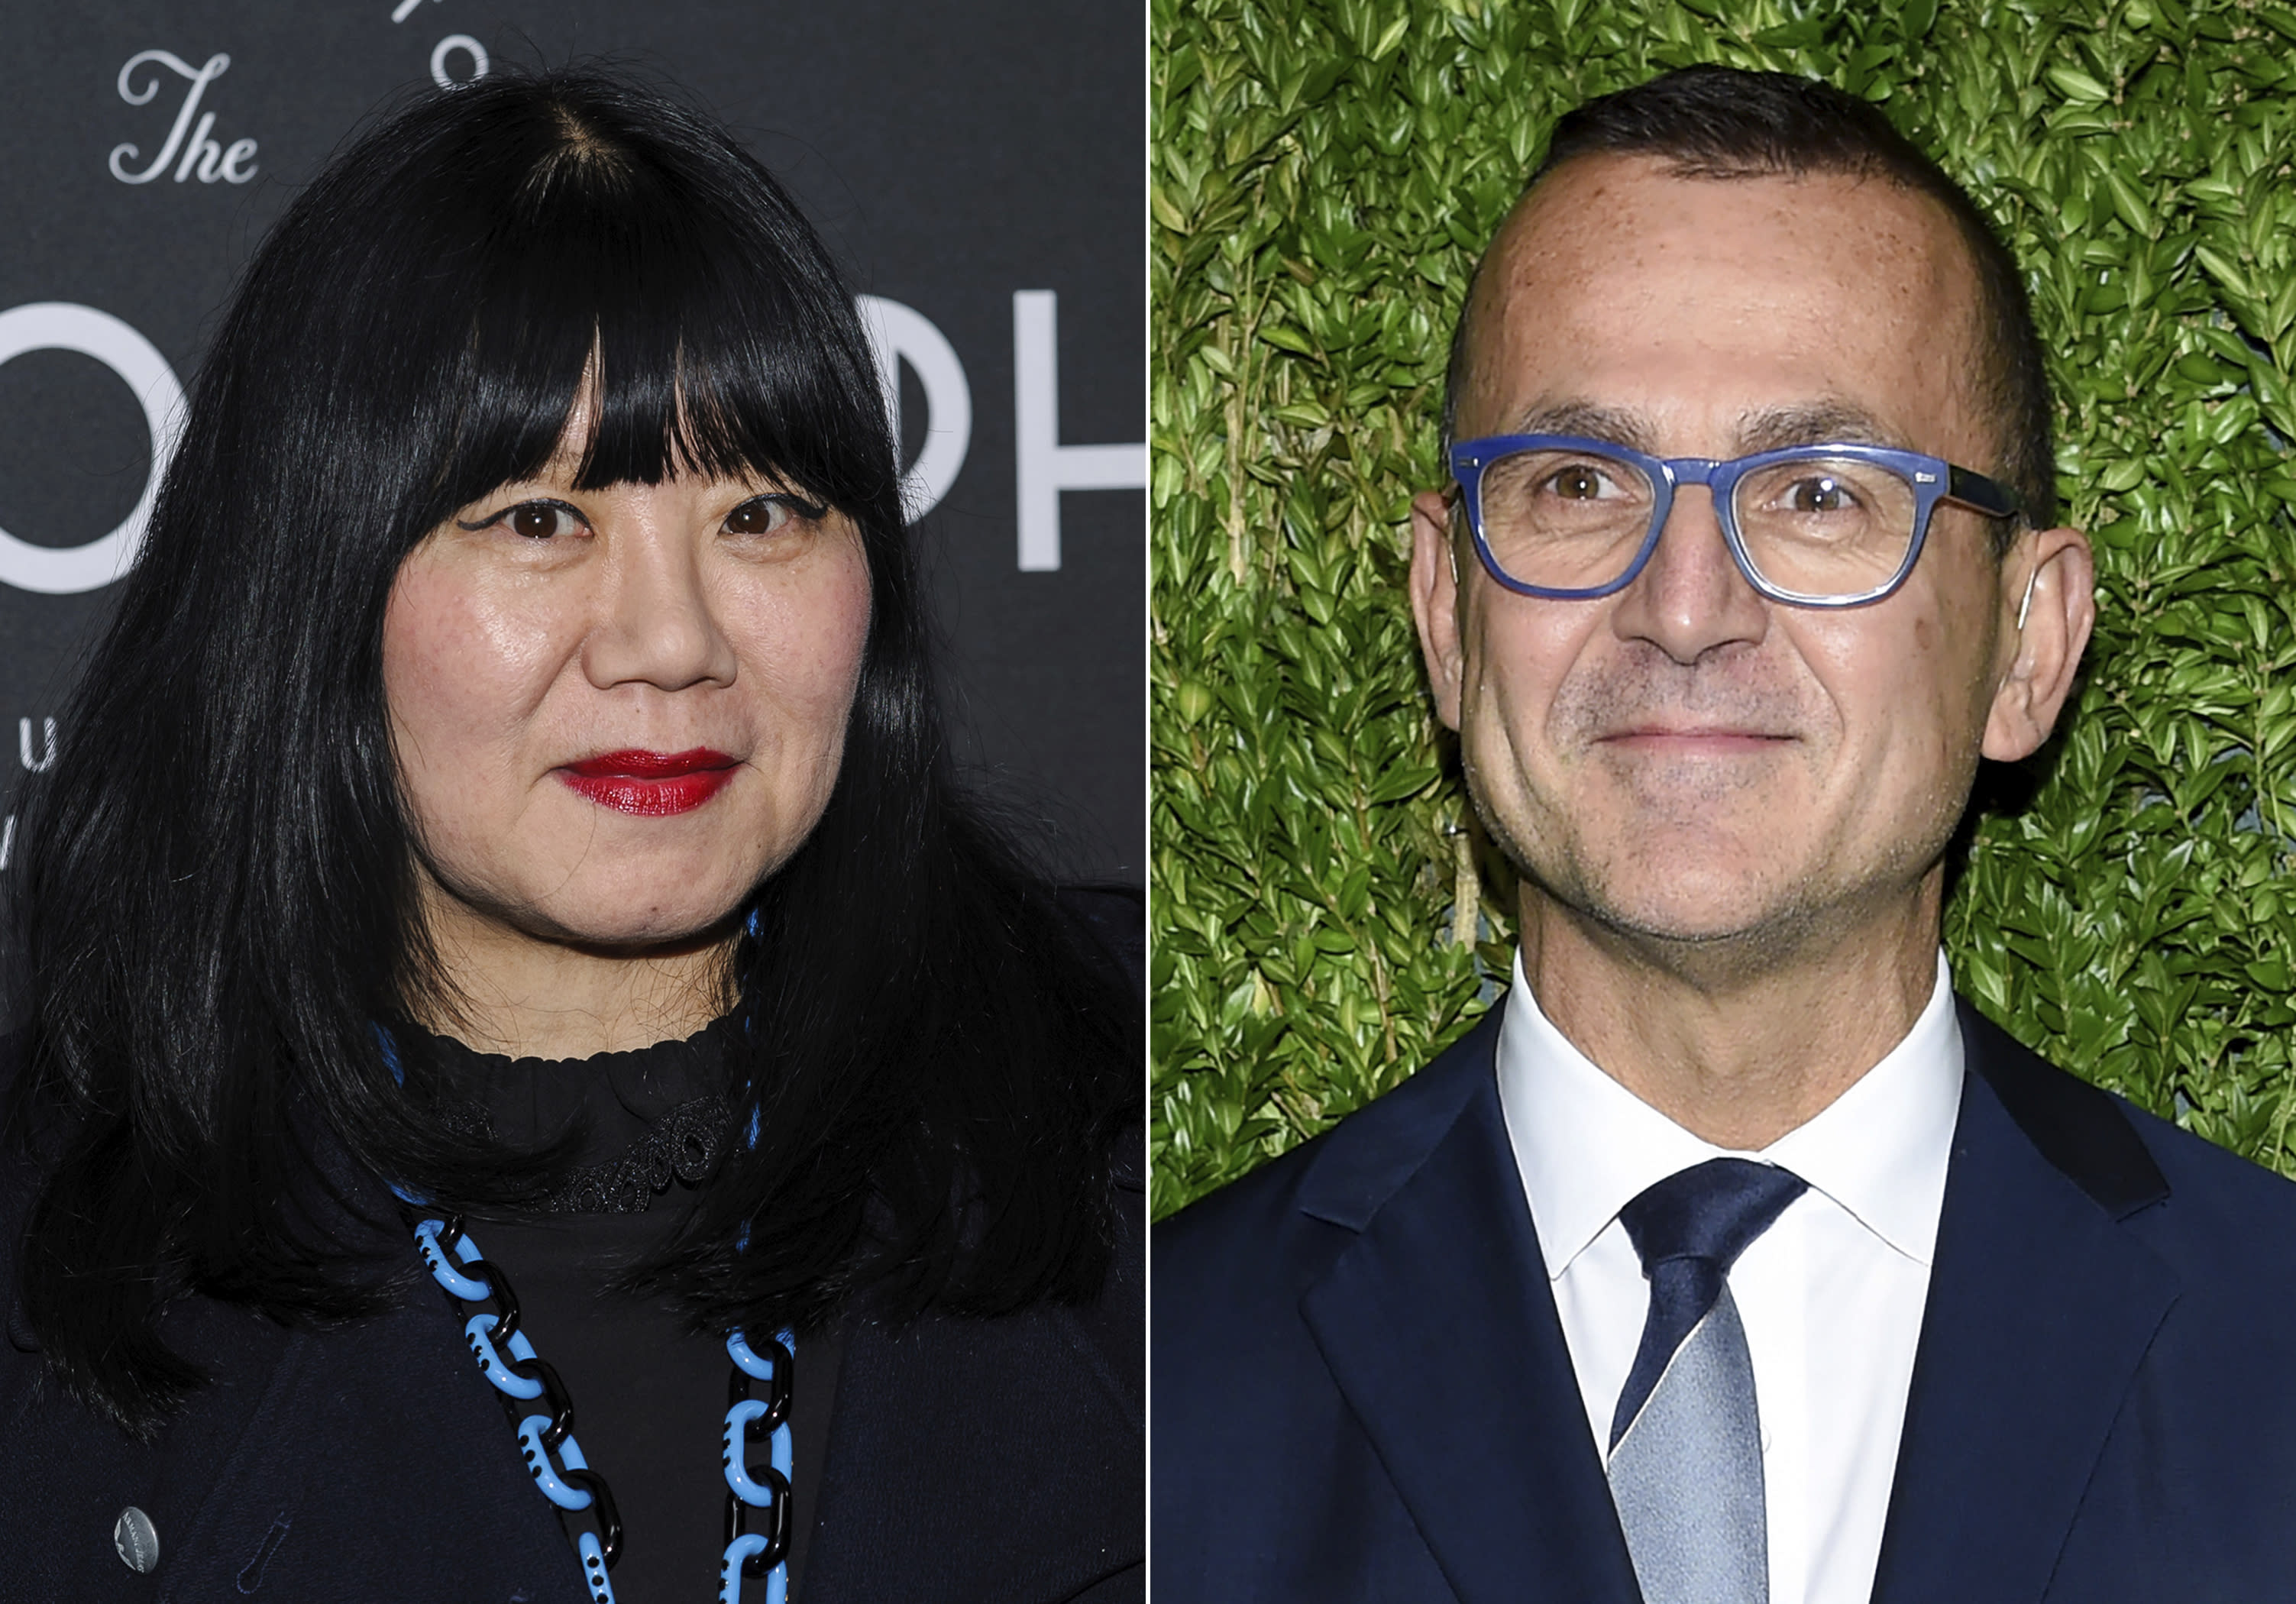 This combination photo shows Anna Sui at the third anniversary party for Metrograph in New York on March 21, 2019, left, and Council of Fashion Designers of America CEO Steven Kolb at the 15th annual CFDA / Vogue Fashion Fund event in New York on Nov. 5, 2018. The CFDA has been pushing designers to go digital this Fashion Week, which begins Sunday evening and lasts through Wednesday. Sui will be presenting a video of her new fall collection. (AP Photo)